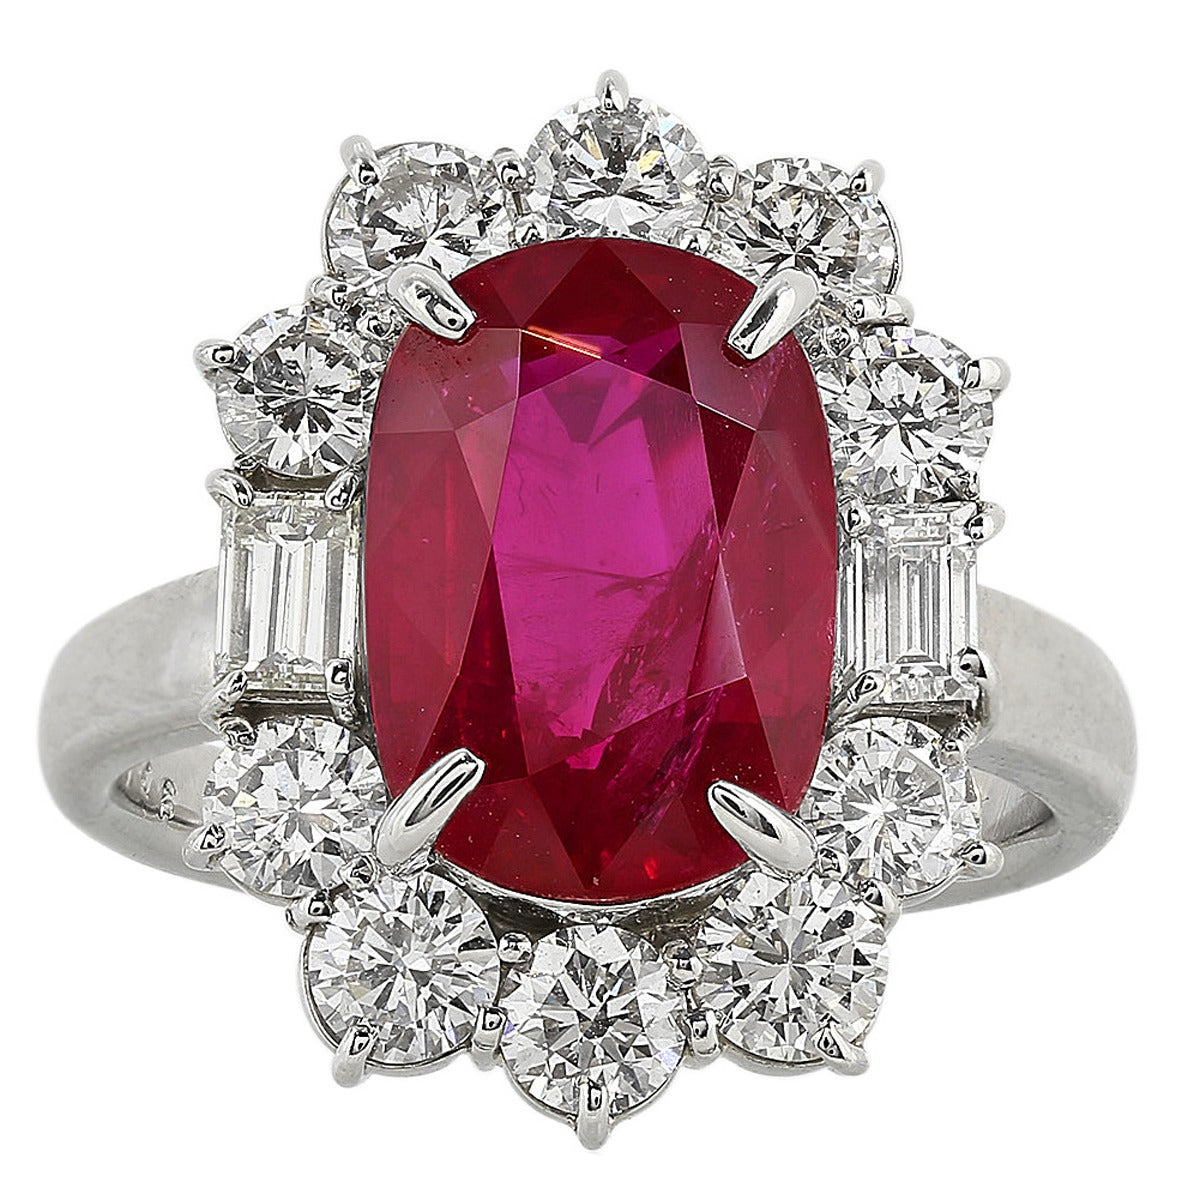 5.07 Carat Ruby and Diamond Cluster Ring 1